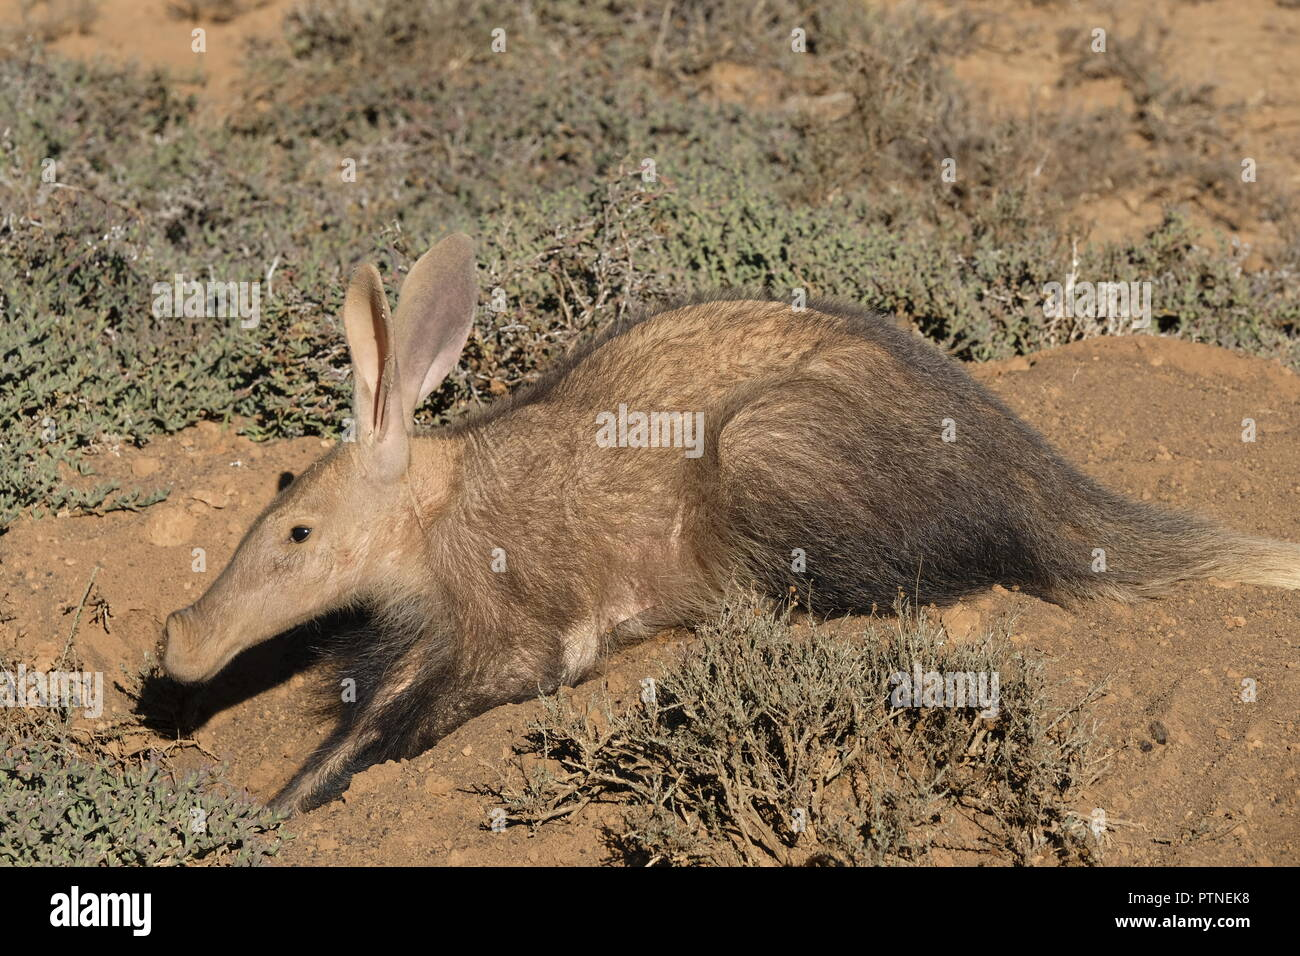 aardvark on burrow - early Winters morning - Kuzuko Lodge, Eastern Cape - Stock Image